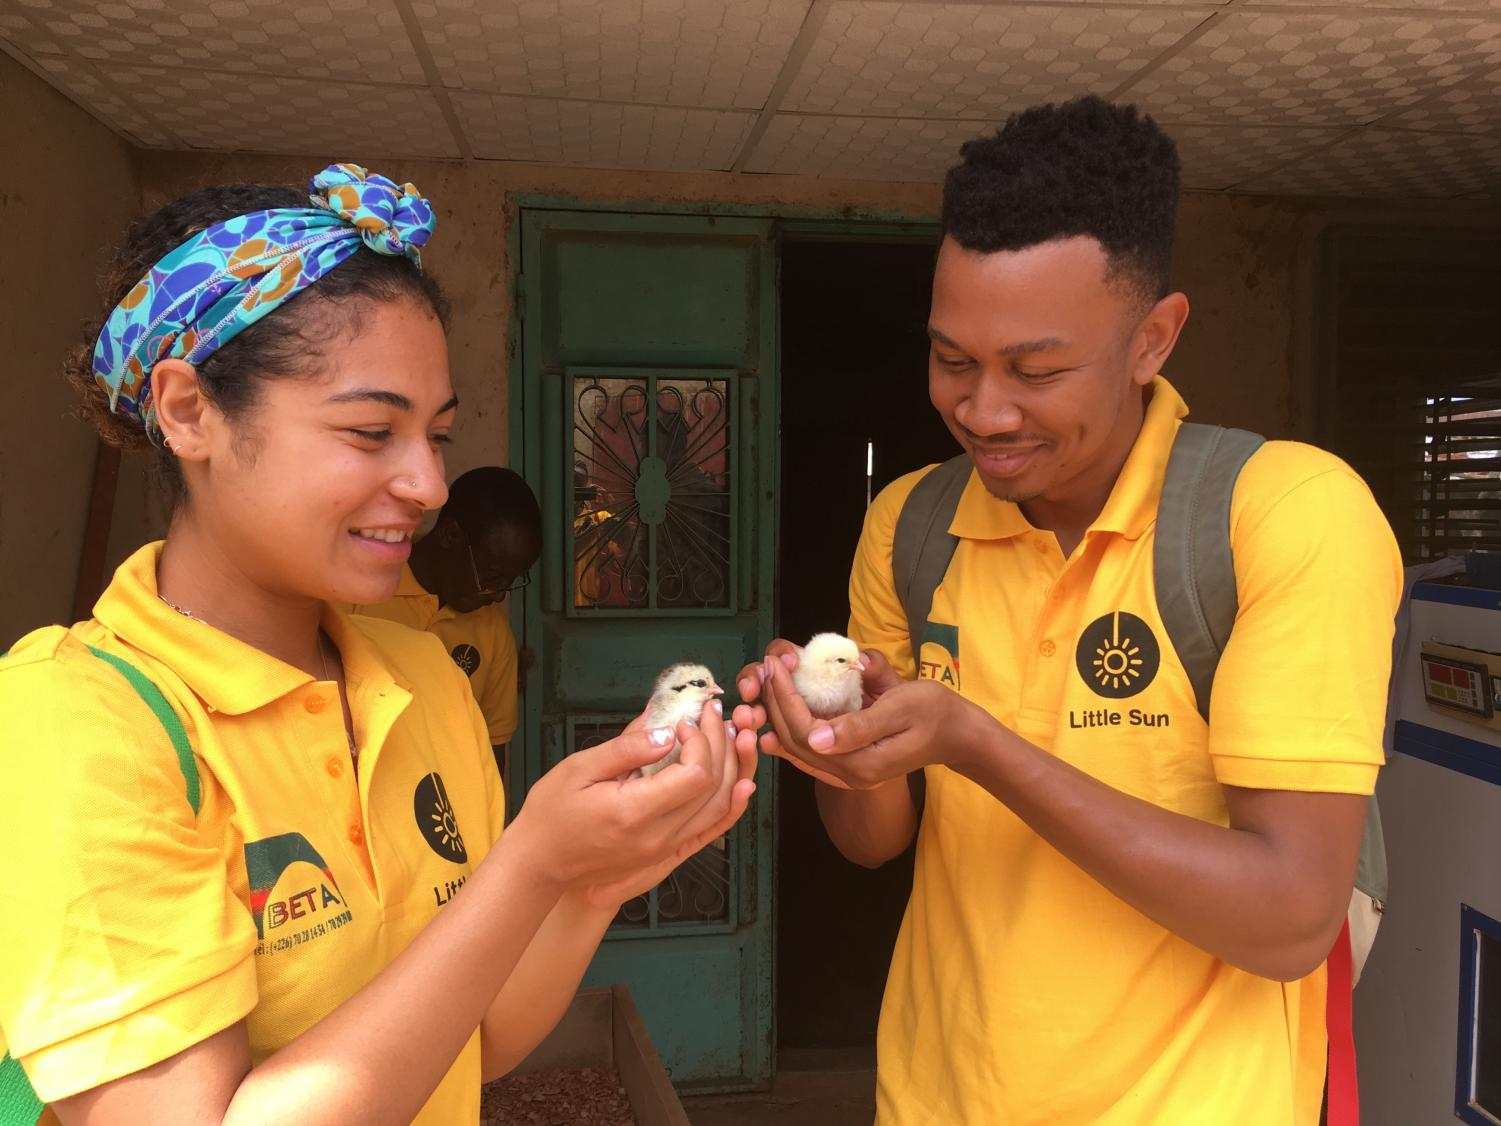 Alumna Bianka Quintanilla-Whye and teammate Paul Watkins hold newly-born chicks hatched in poultry farmer Boureima Kabre's traditionally-powered incubator in Burkina Faso. Their team from Stanford University worked in Kabre's shop assembling a solar powered incubator they designed.